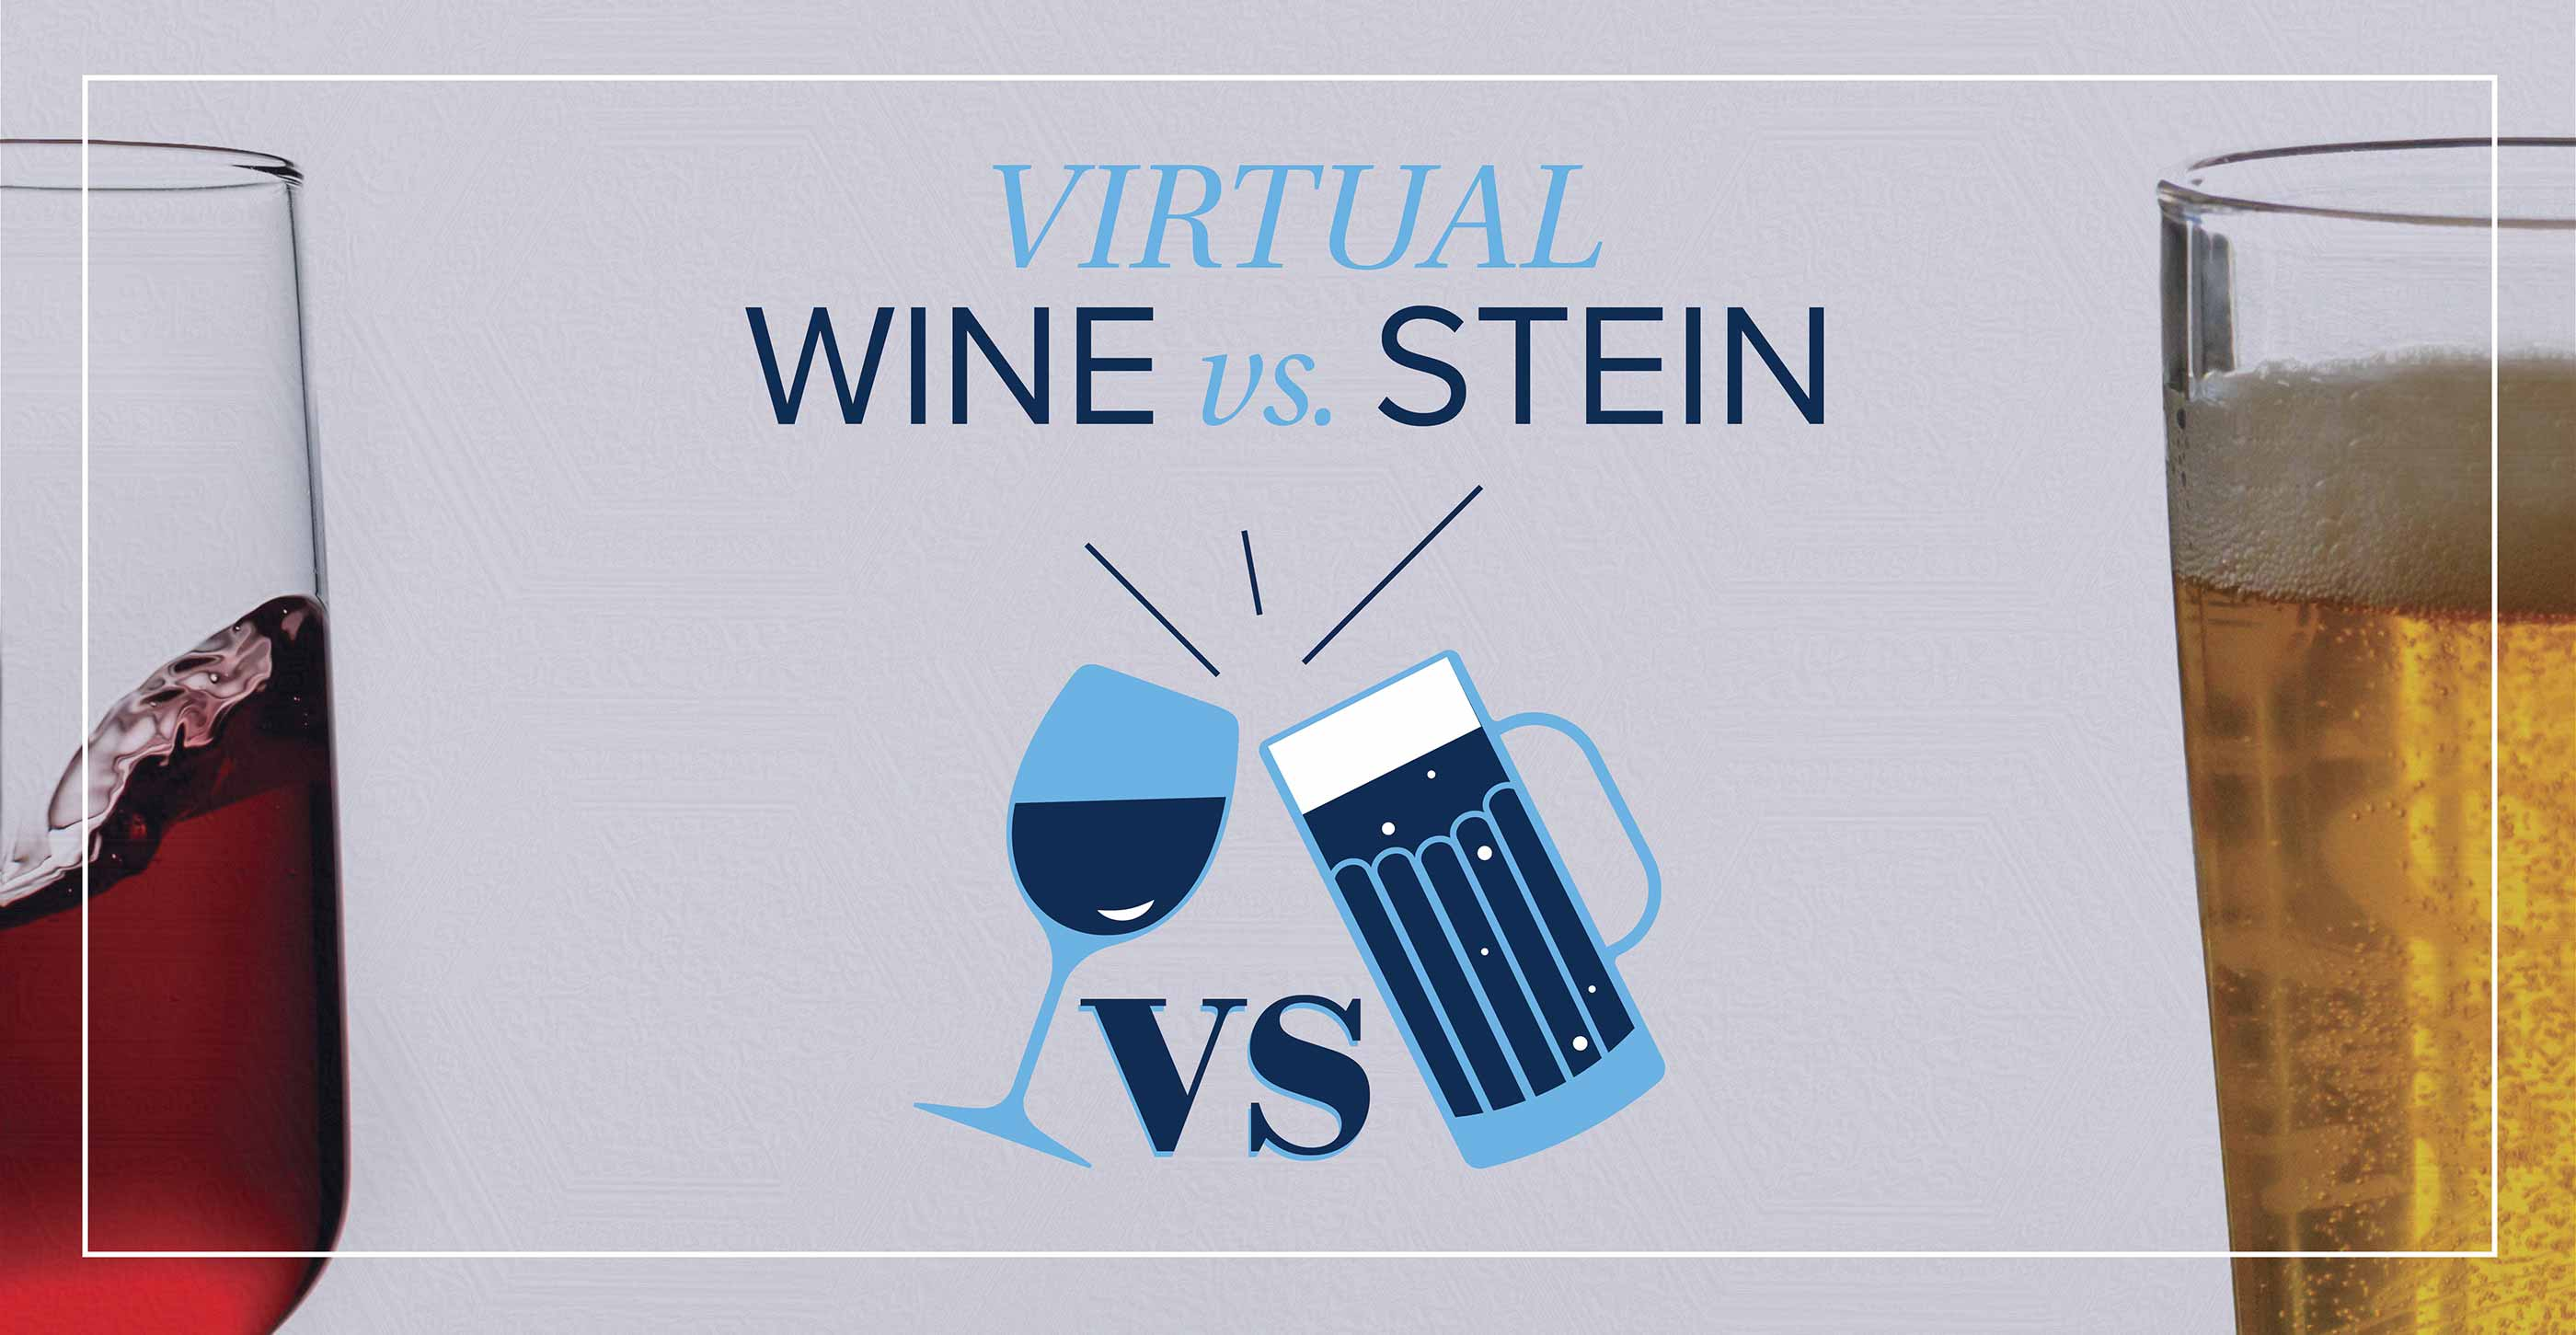 Virtual Wine vs Stein